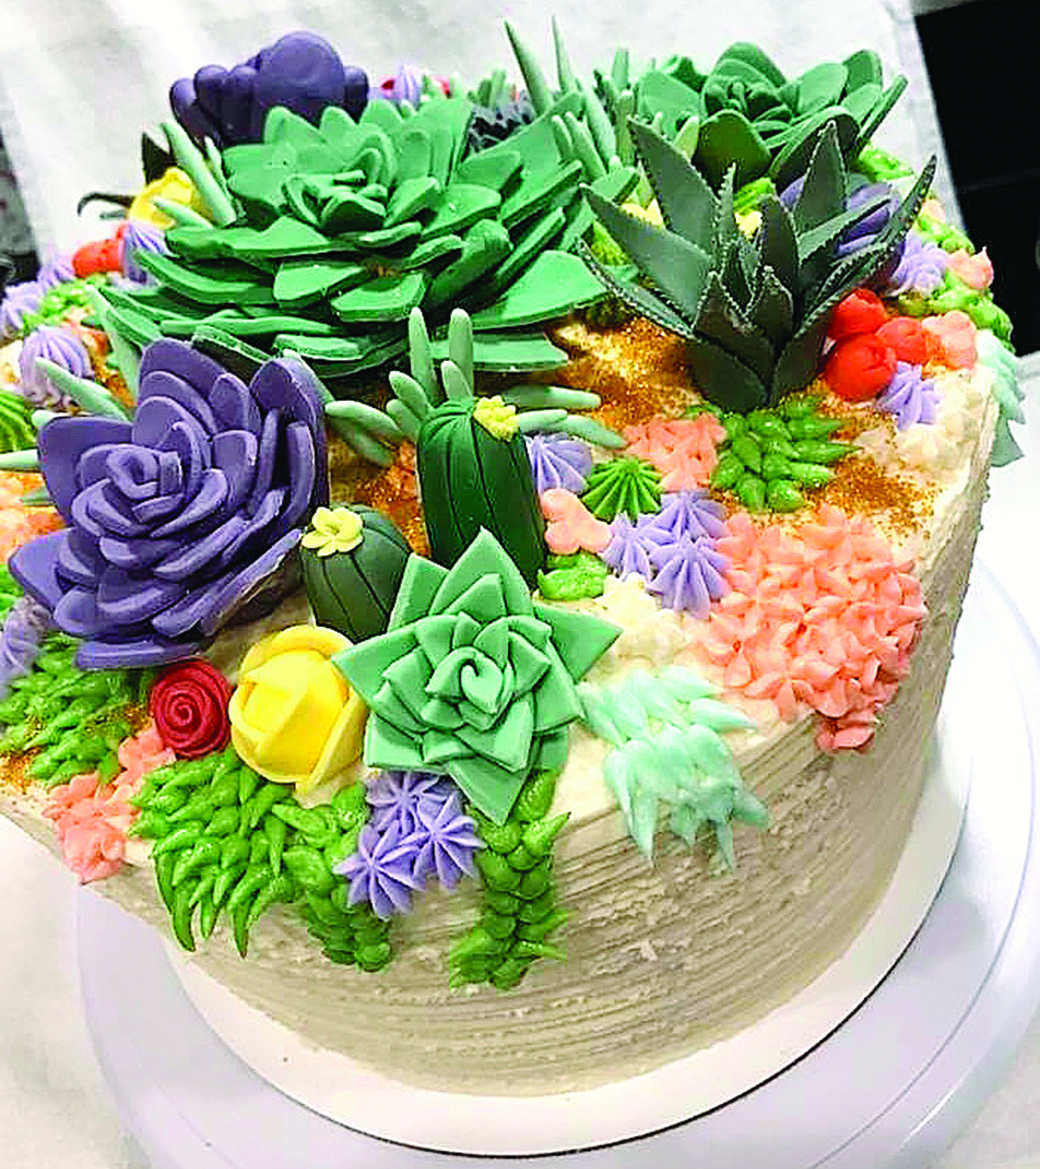 Pictured is a cake designed by Ani Piper and Kelly Rigsby to resemble succulents.